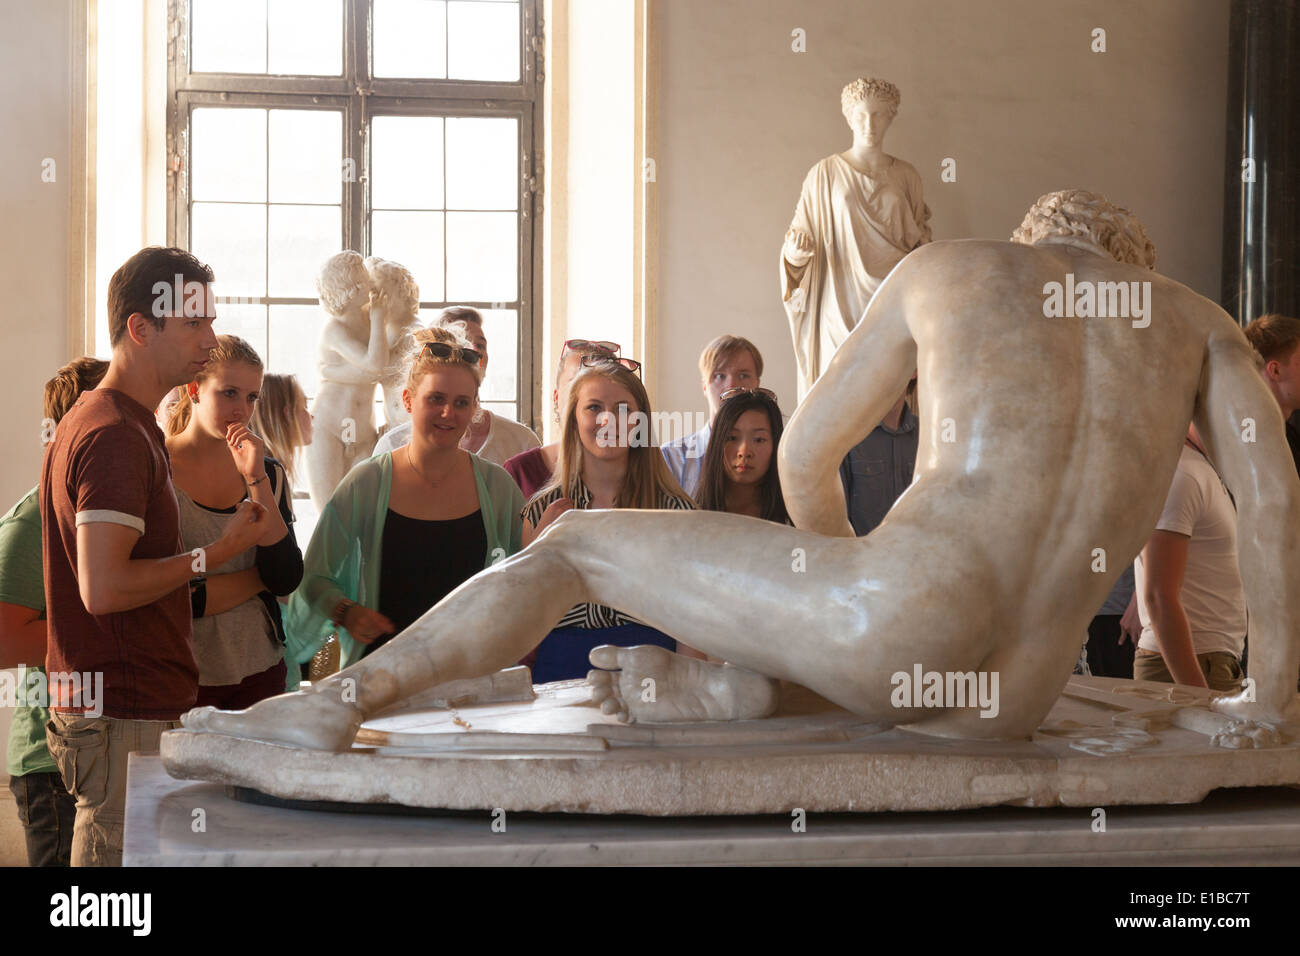 Visitors on a guided tour of the Musei Capitolini ( Capitoline Museum ), looking at the statue of the Dying Gaul,  Rome Italy - Stock Image